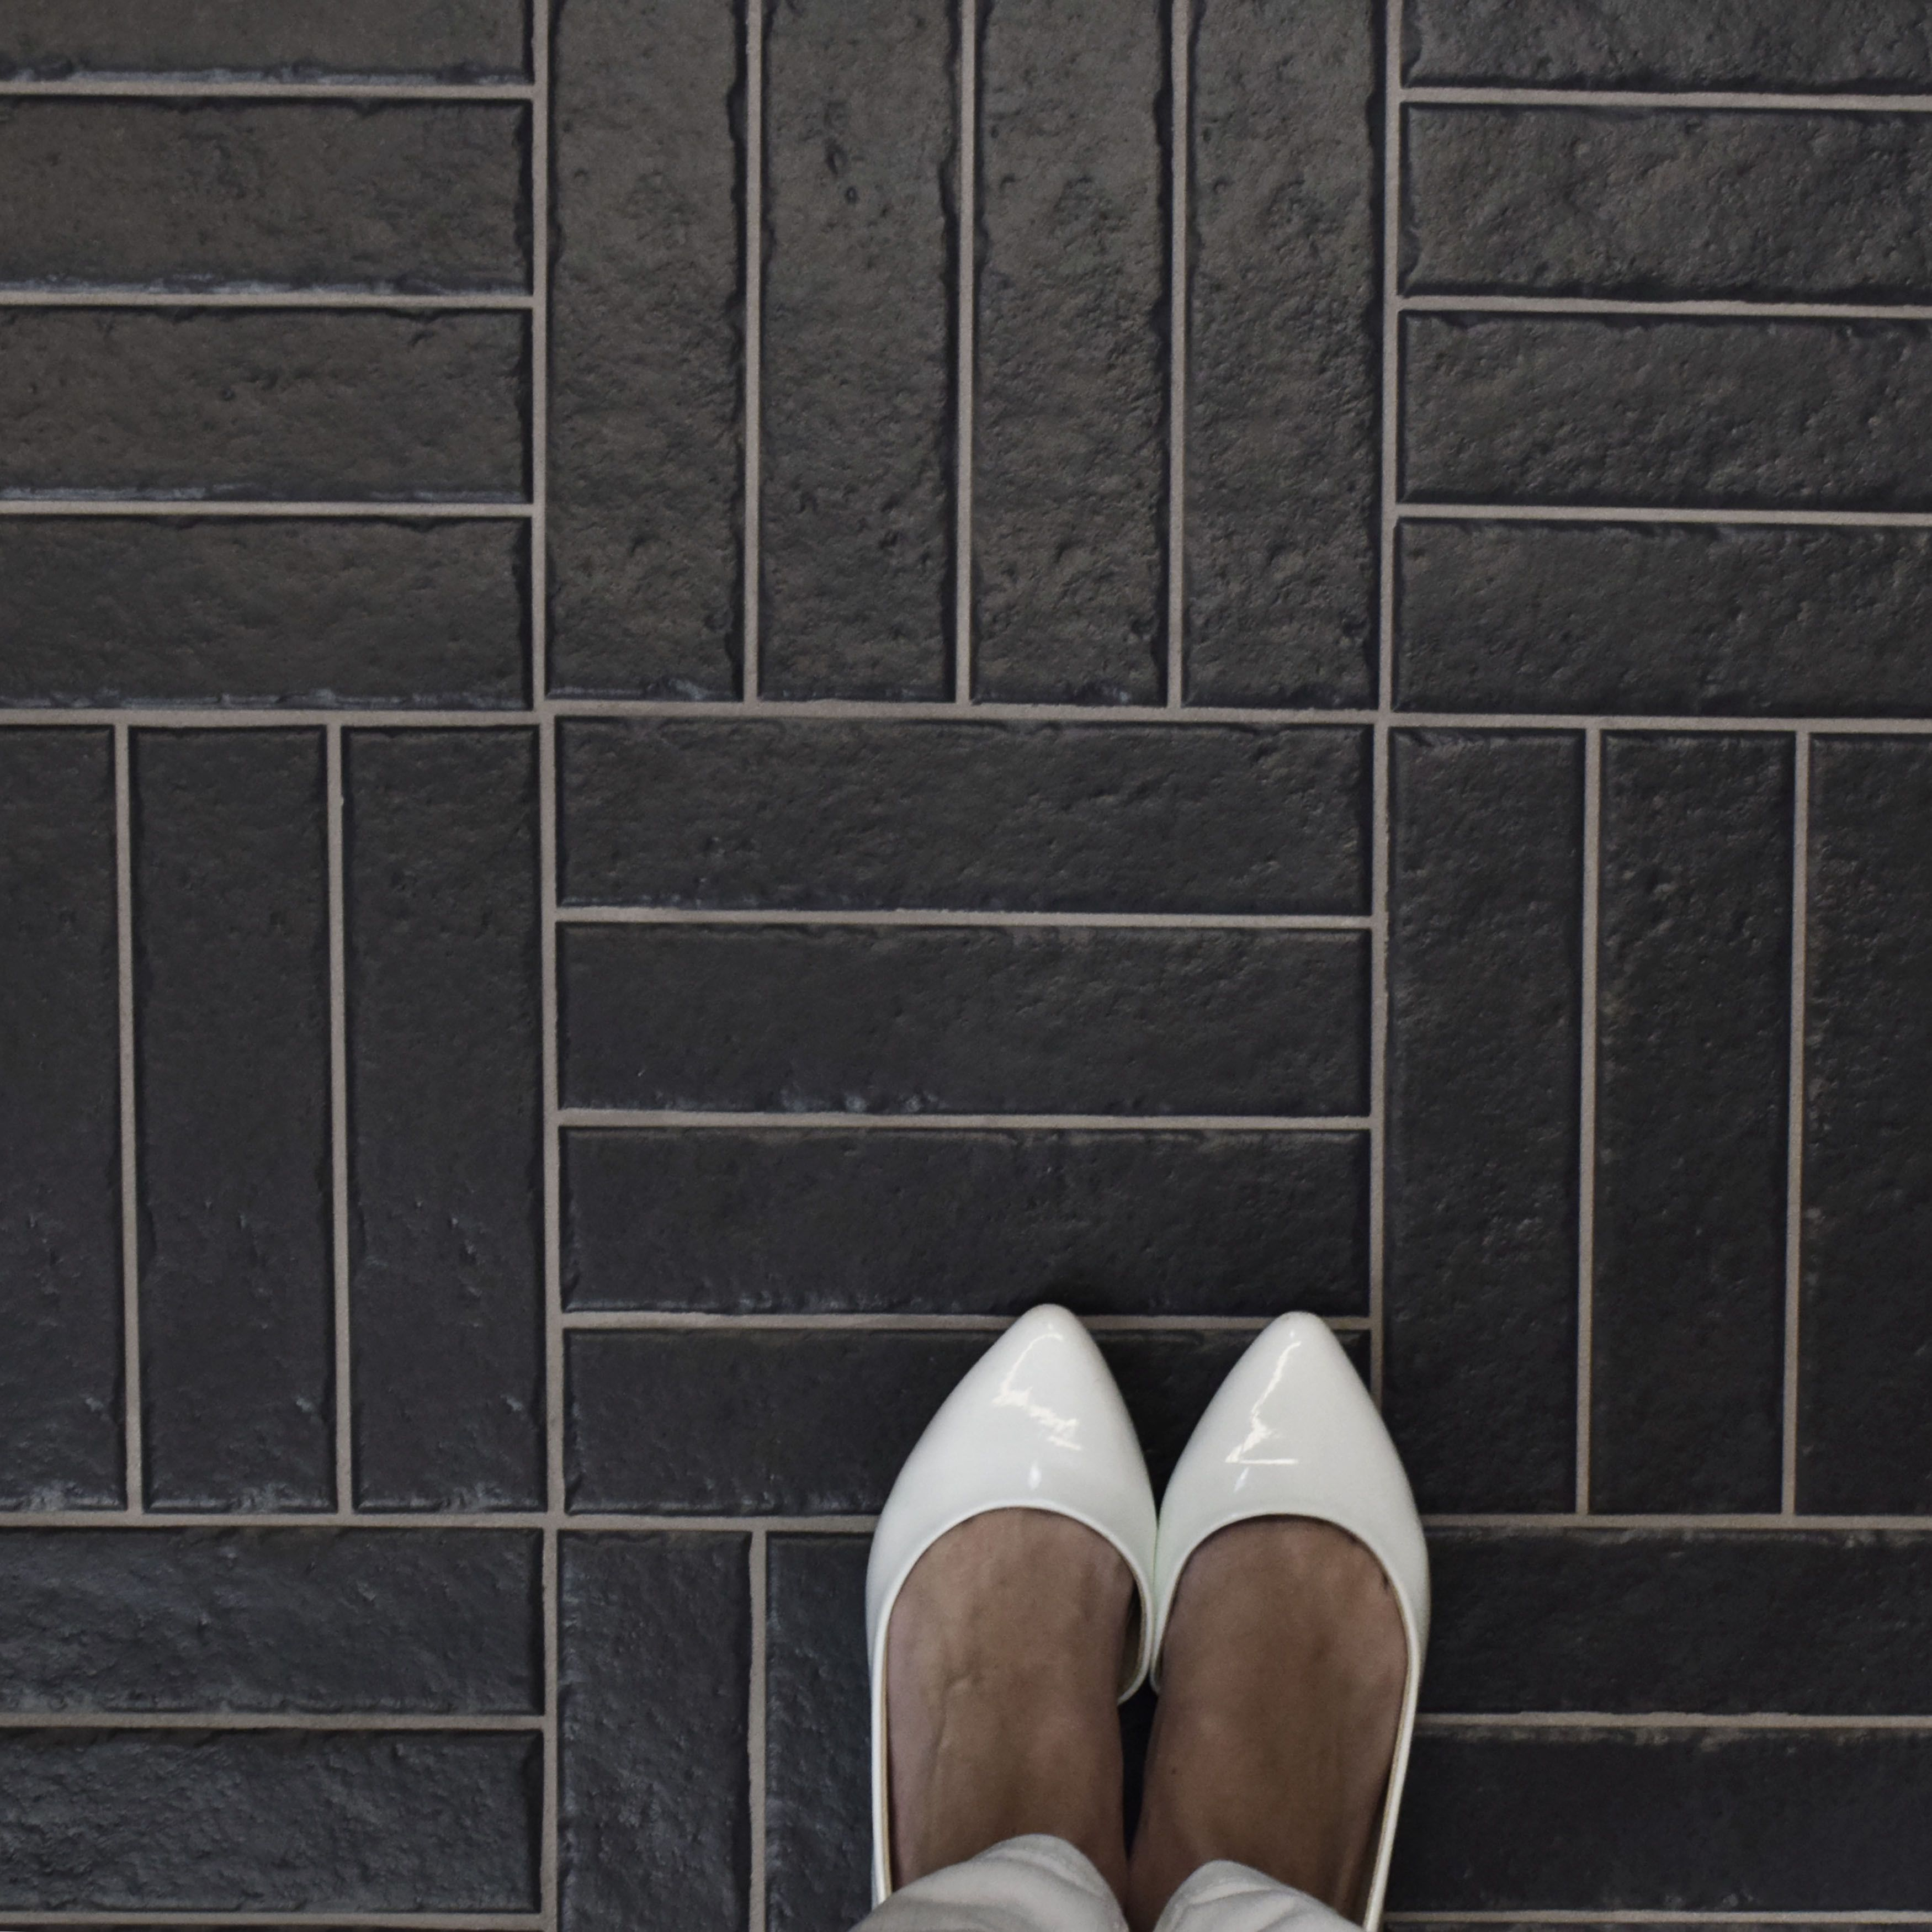 Somertile 2375x95 Inch Brooklyn Brick Floor And Wall Tile